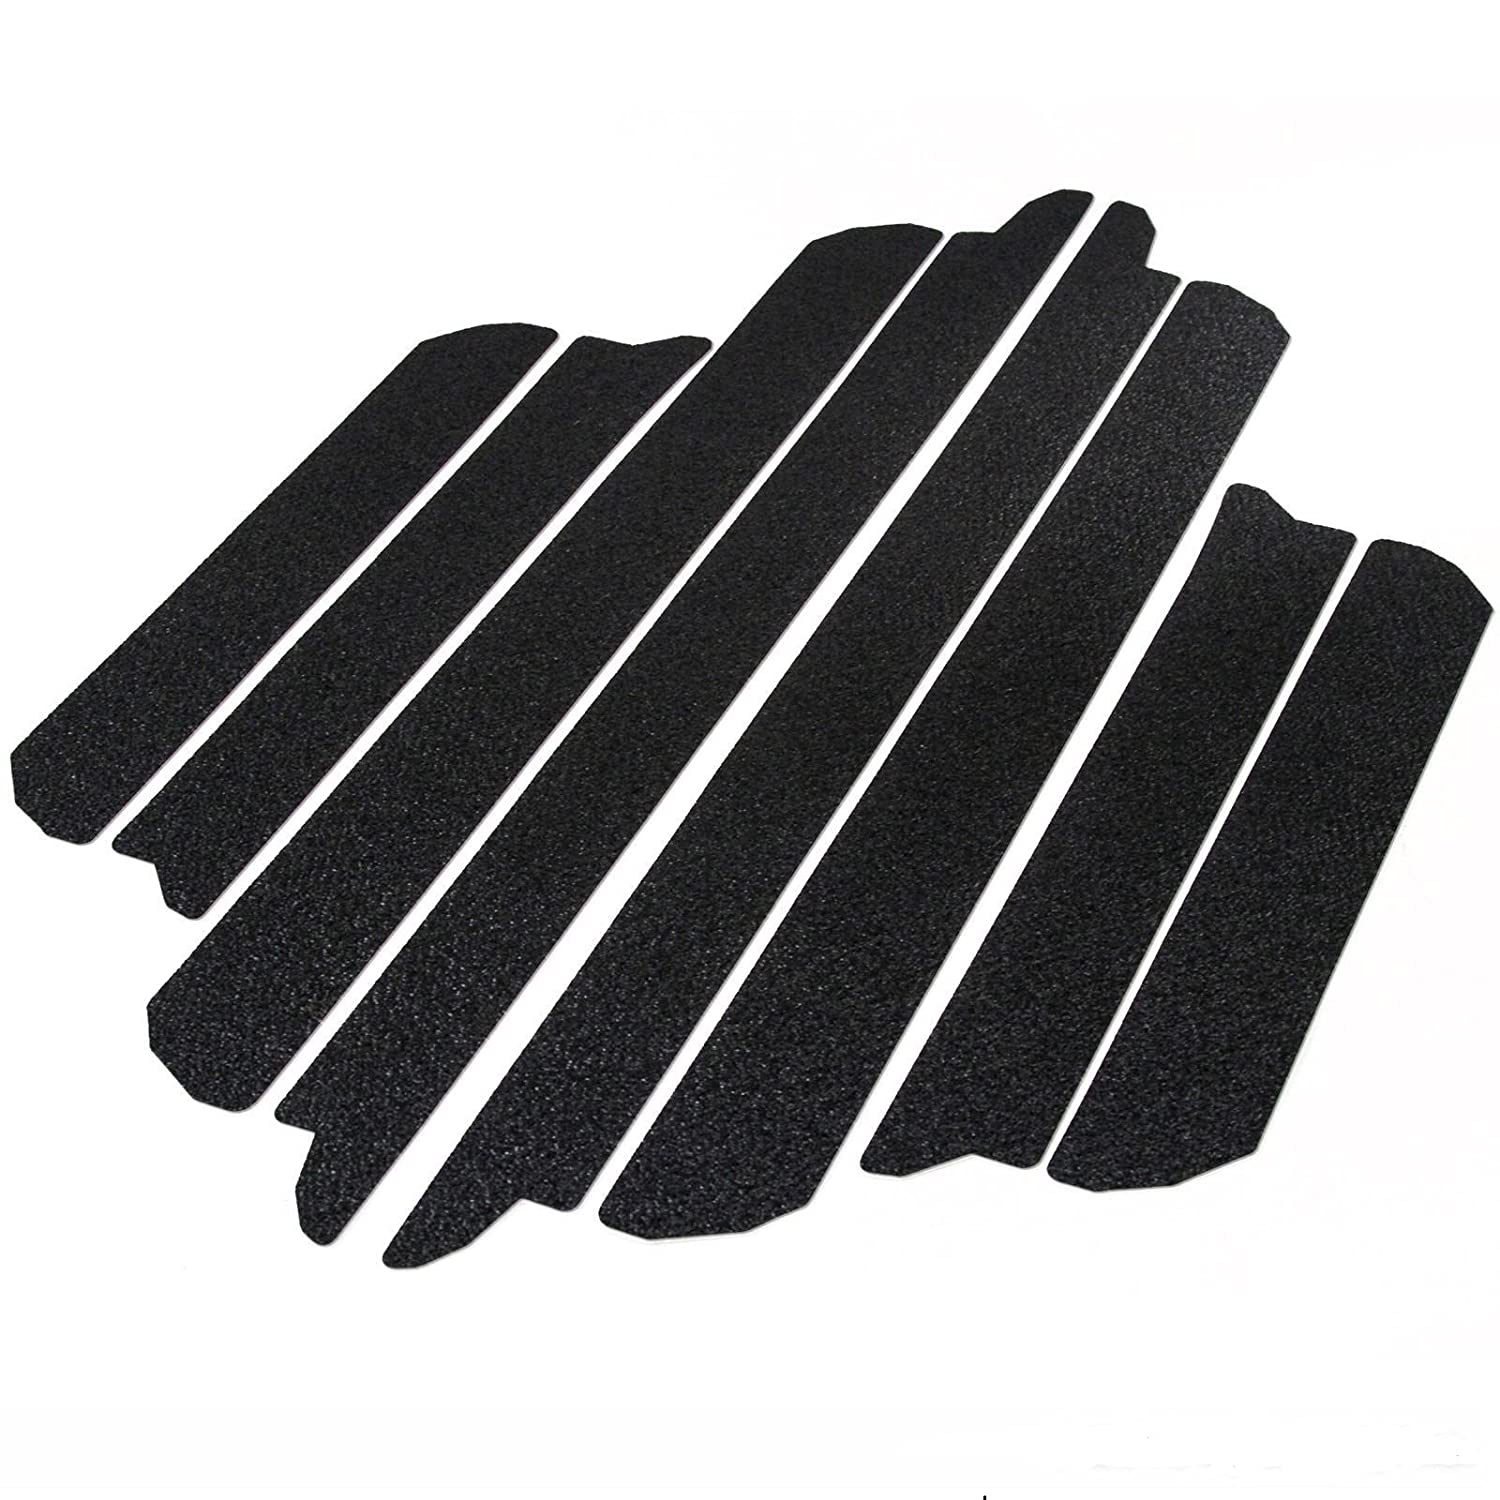 T-Foot 8pc Door Sill Step Protector For 2009-2018 Dodge Ram 1500 2500 Threshold Shield Pads